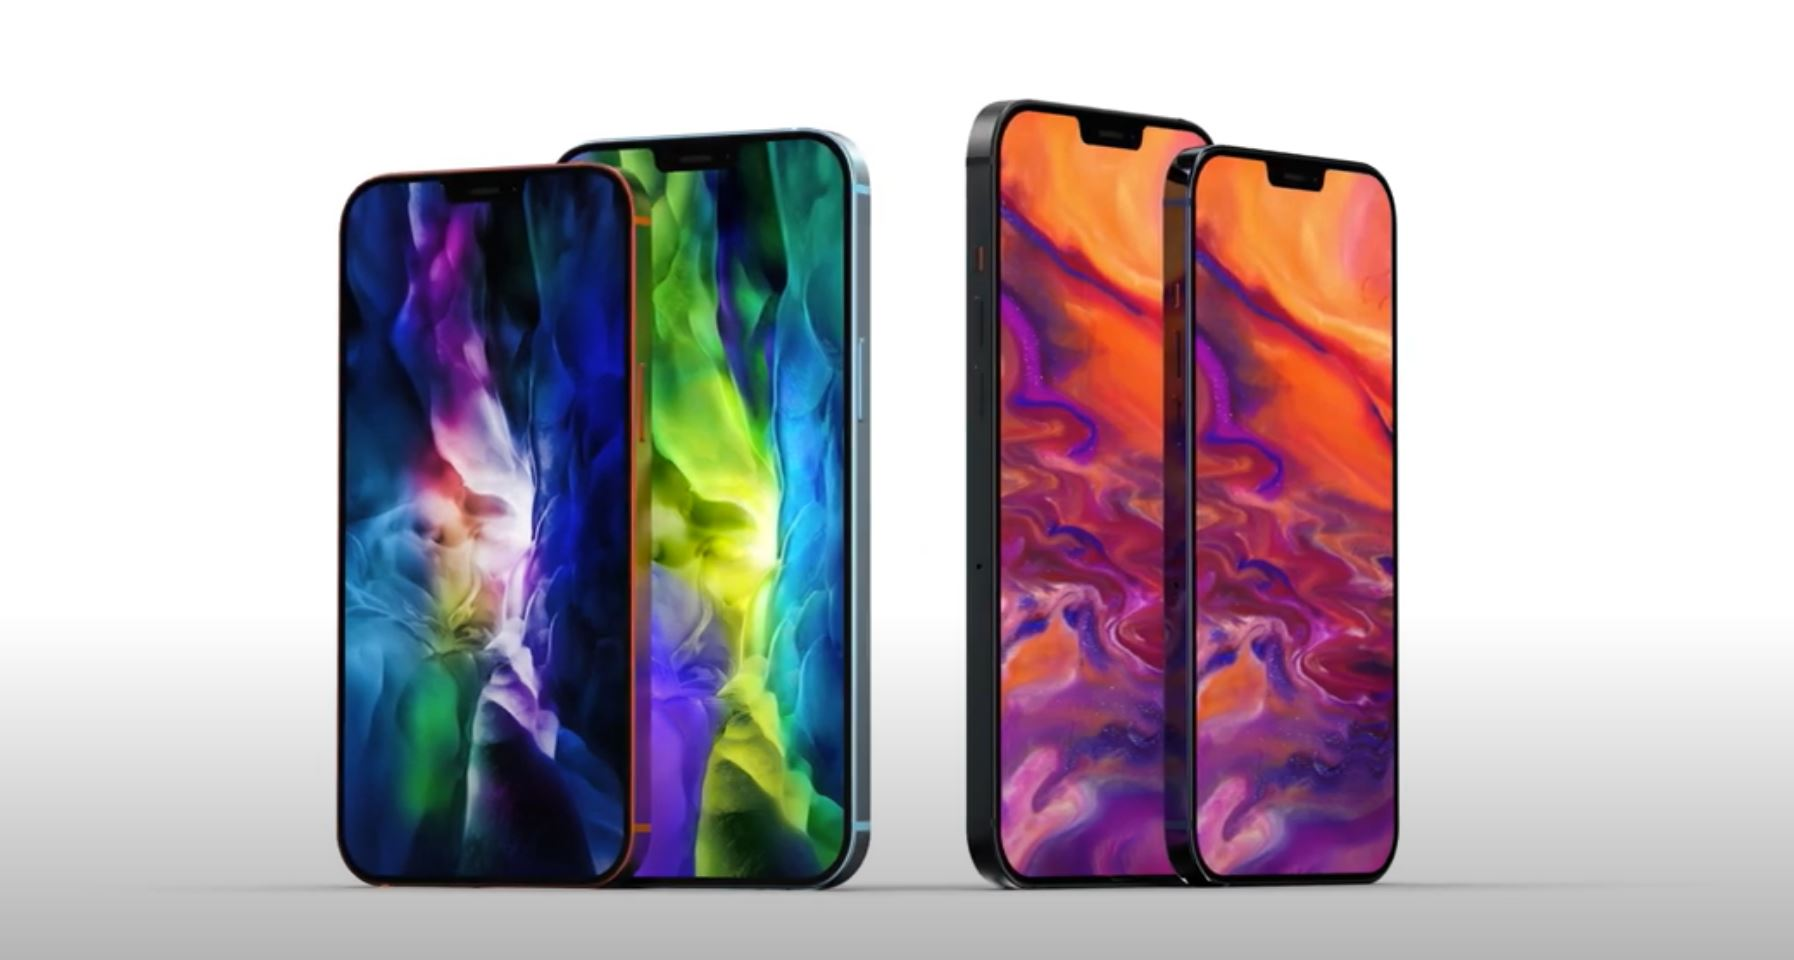 The iPhone 12 Pro may not offer a 120 Hz display